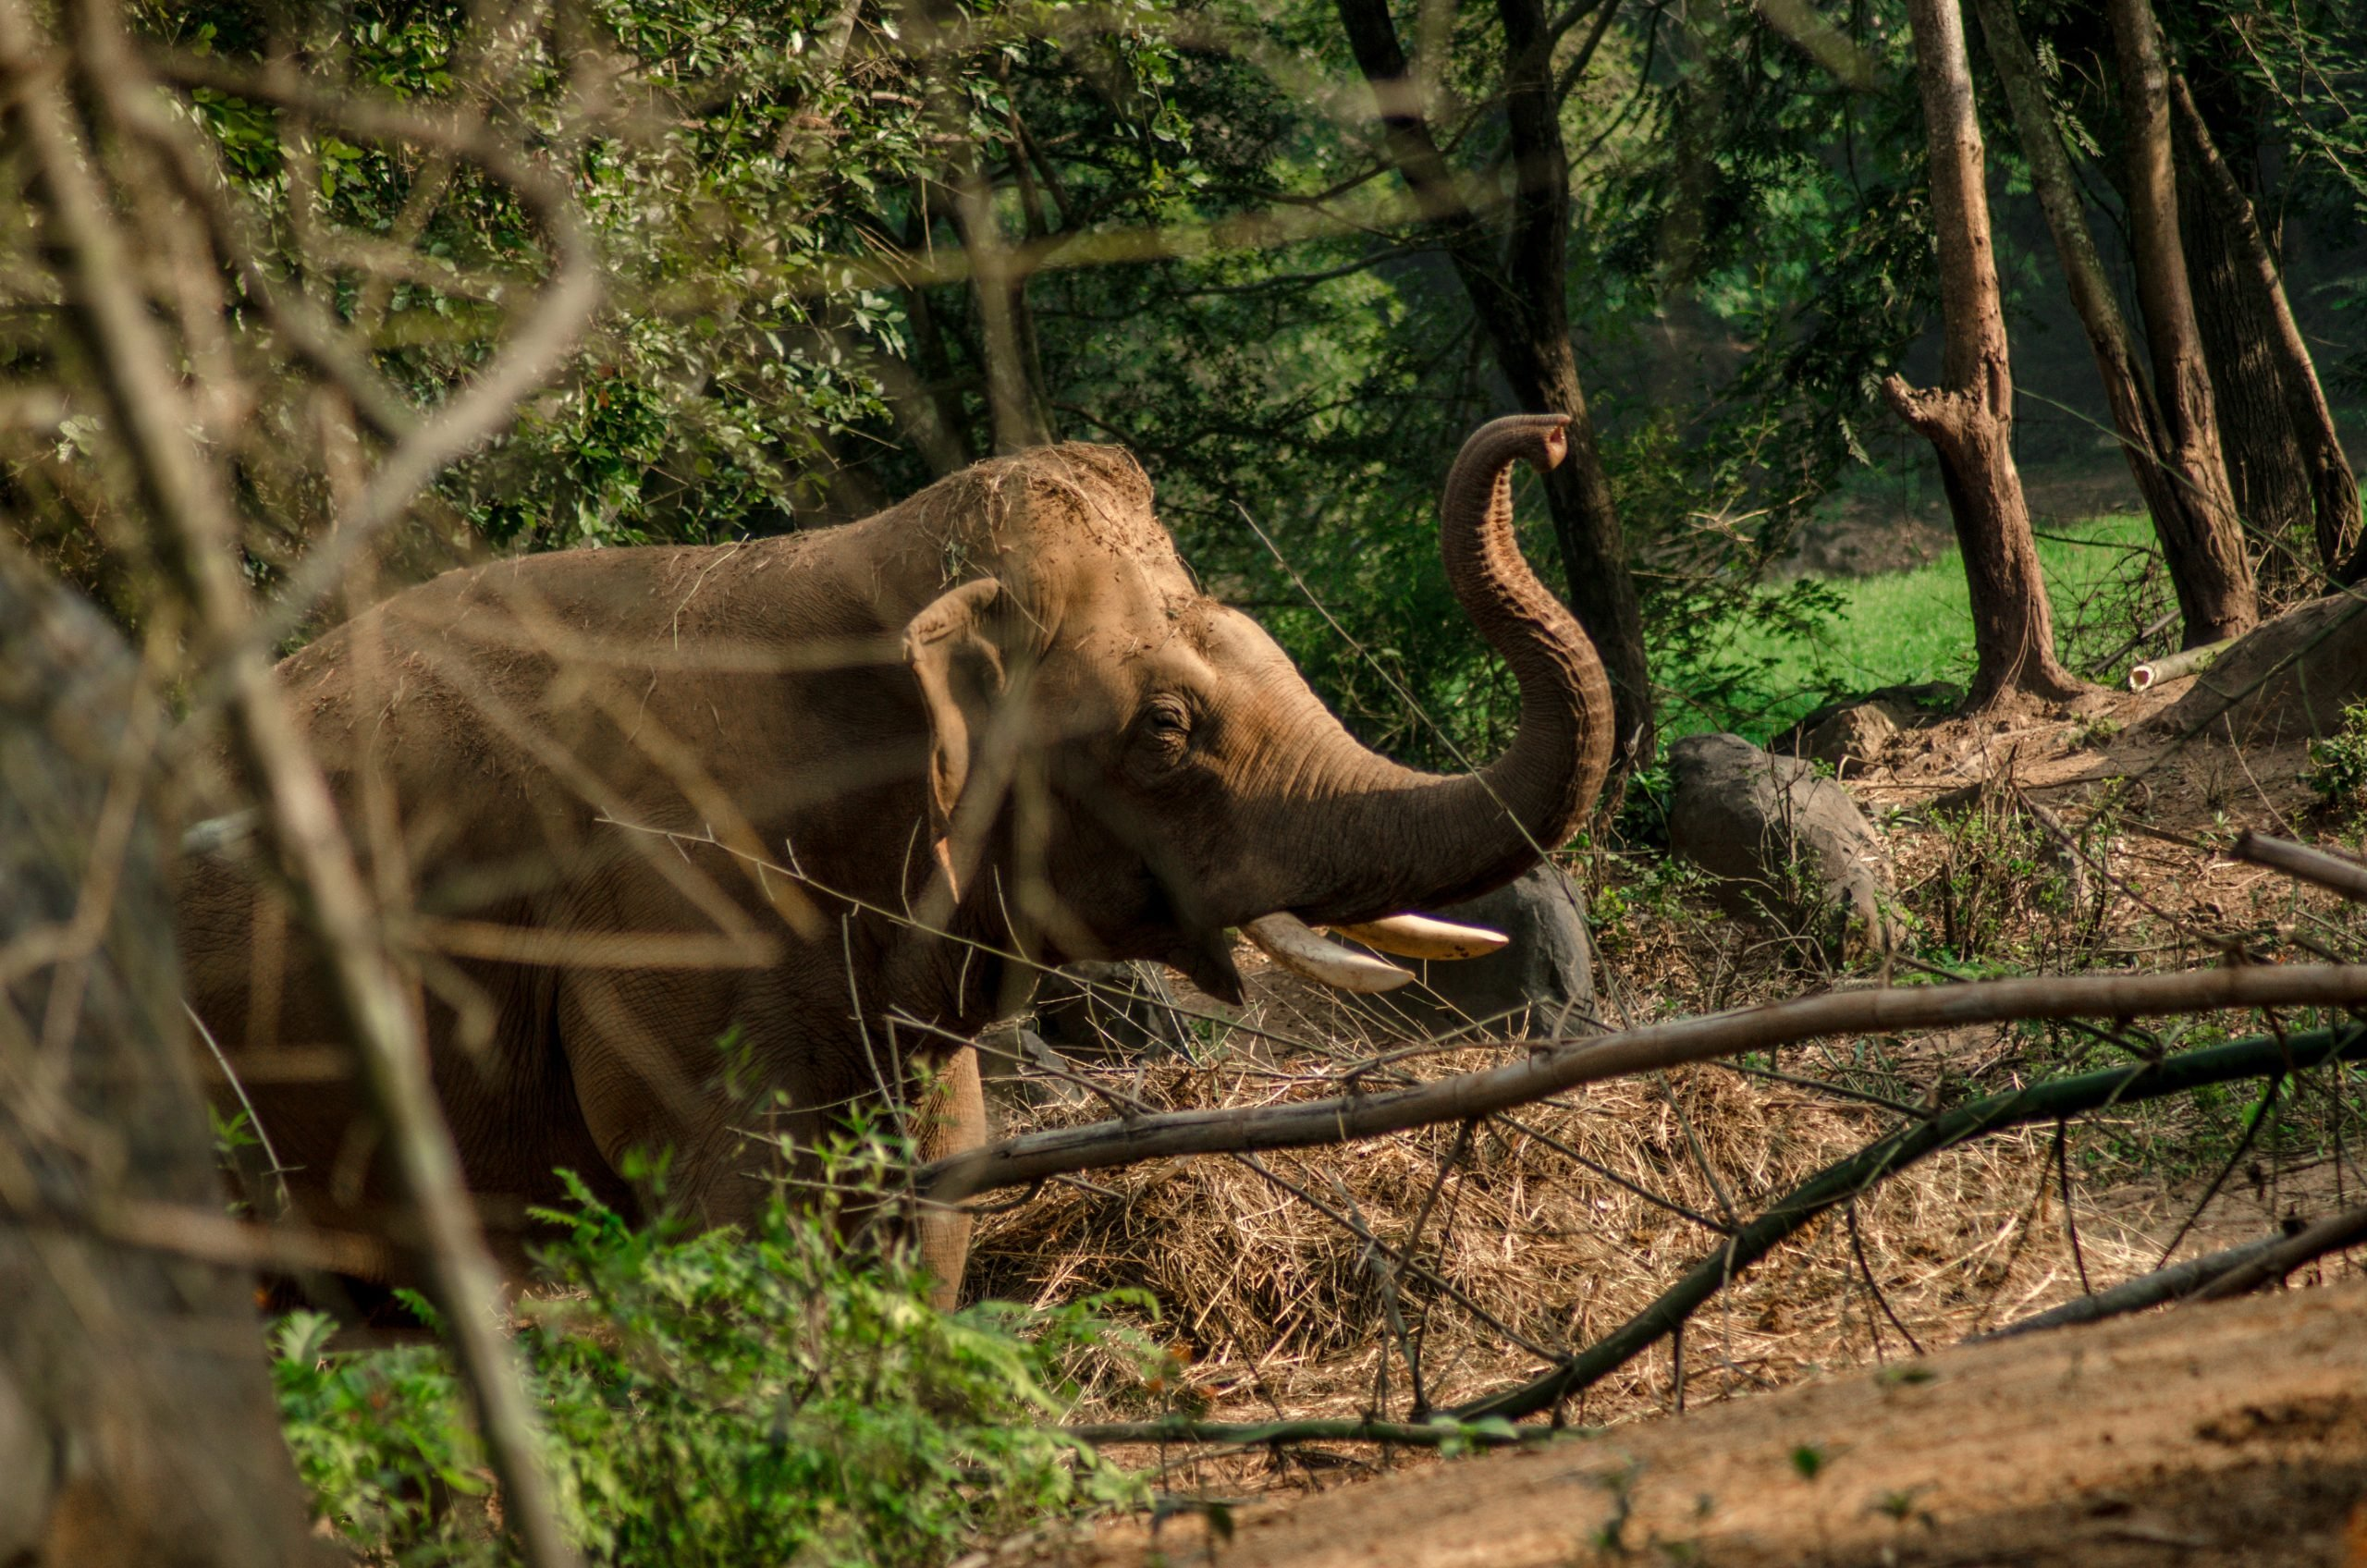 An Elephant at Bannerghatta National park